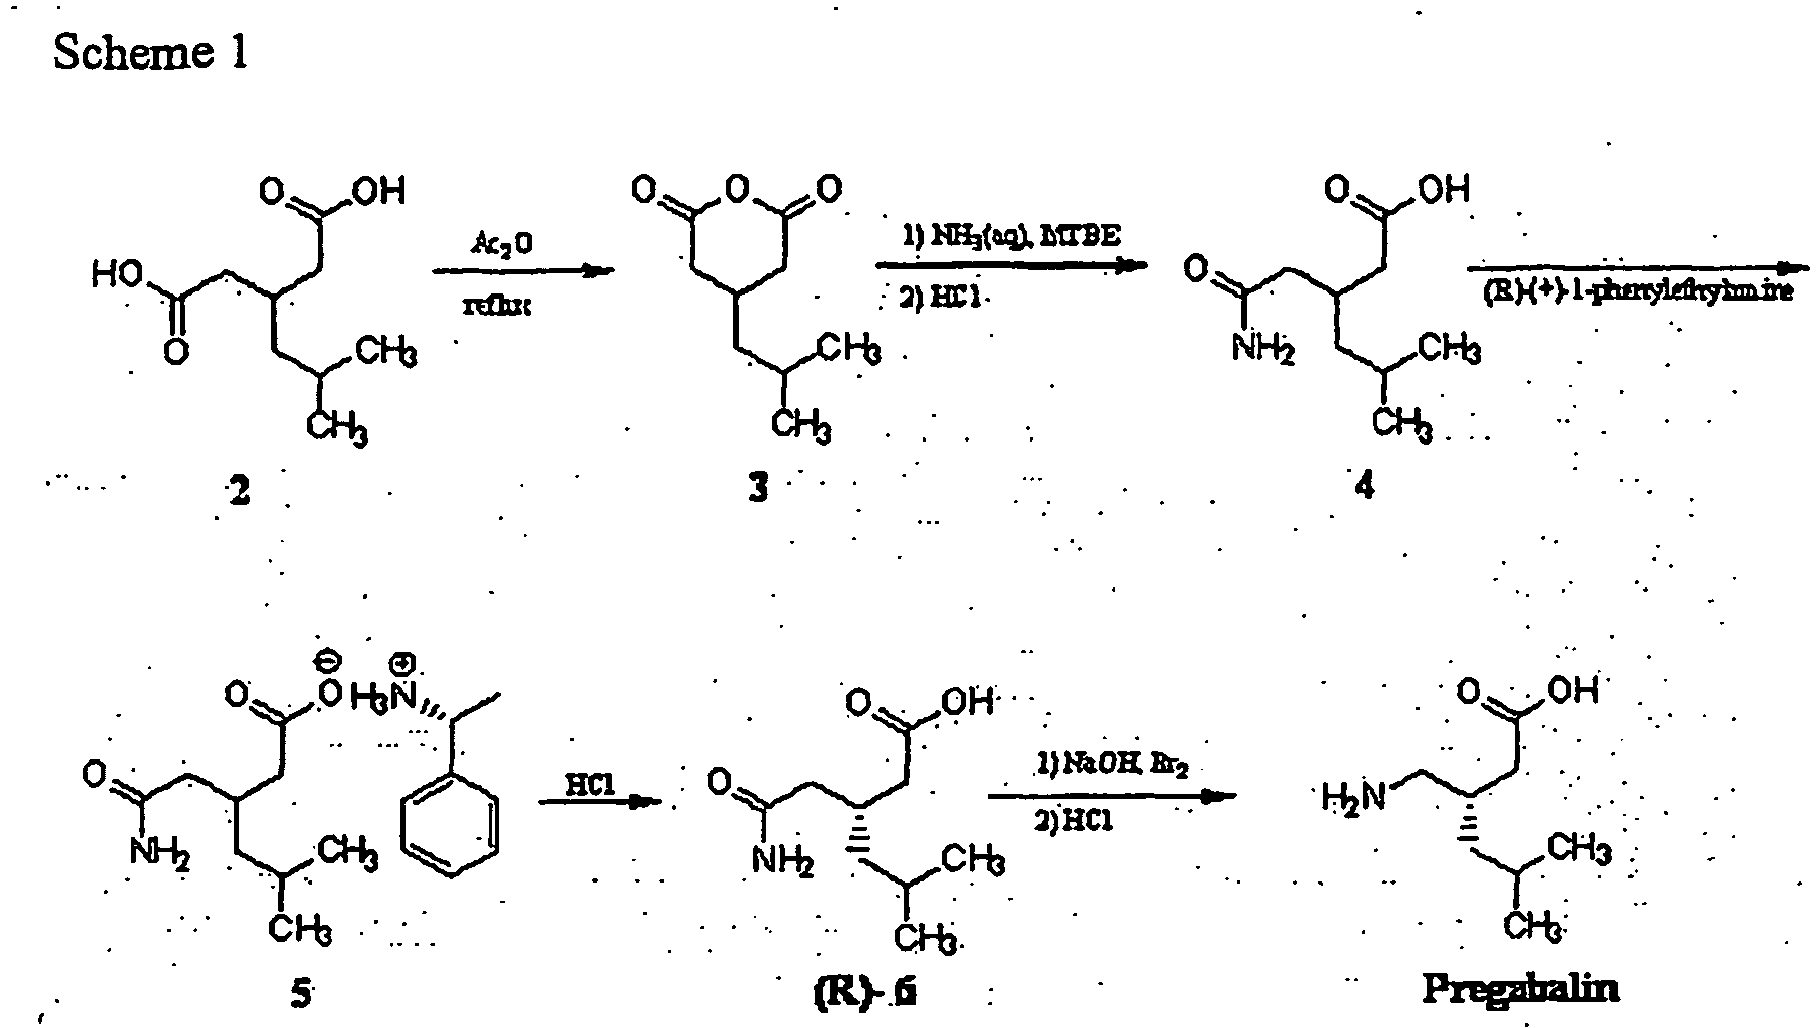 pregabalin enzymatic synthesis and degradation